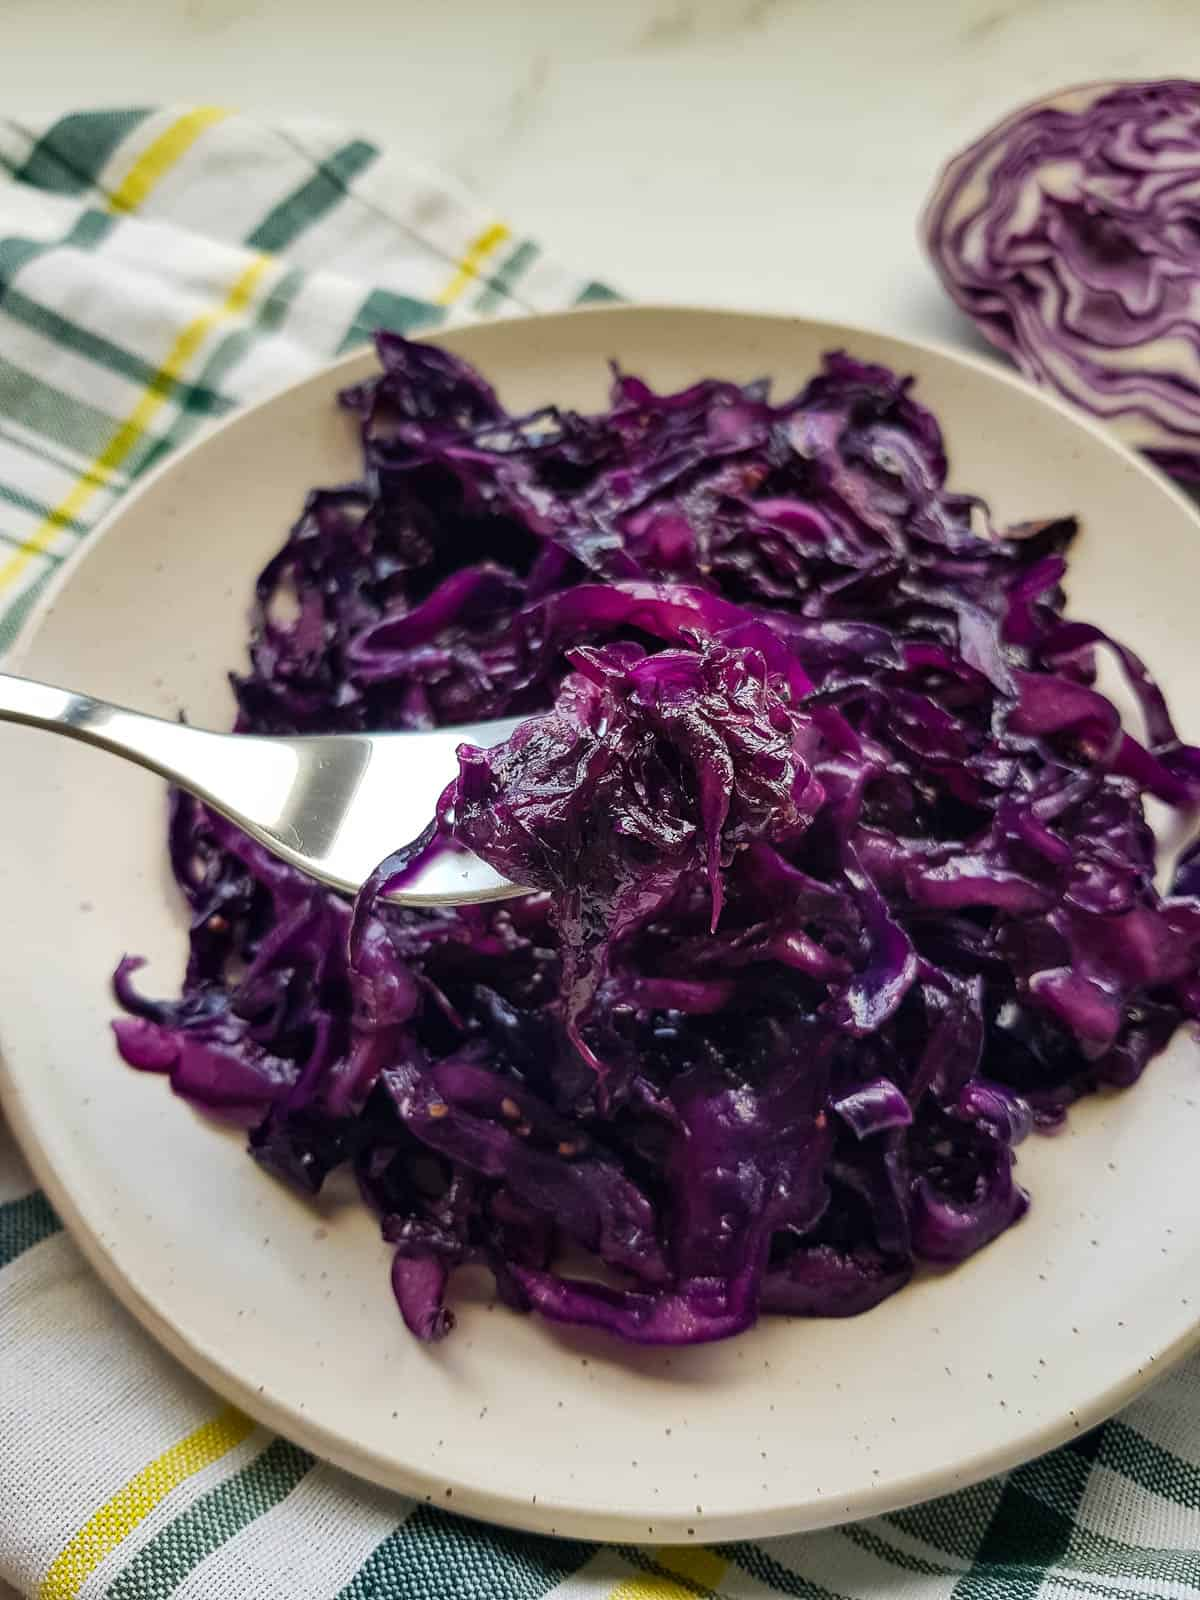 Sauteed red cabbage on a plate with a fork.